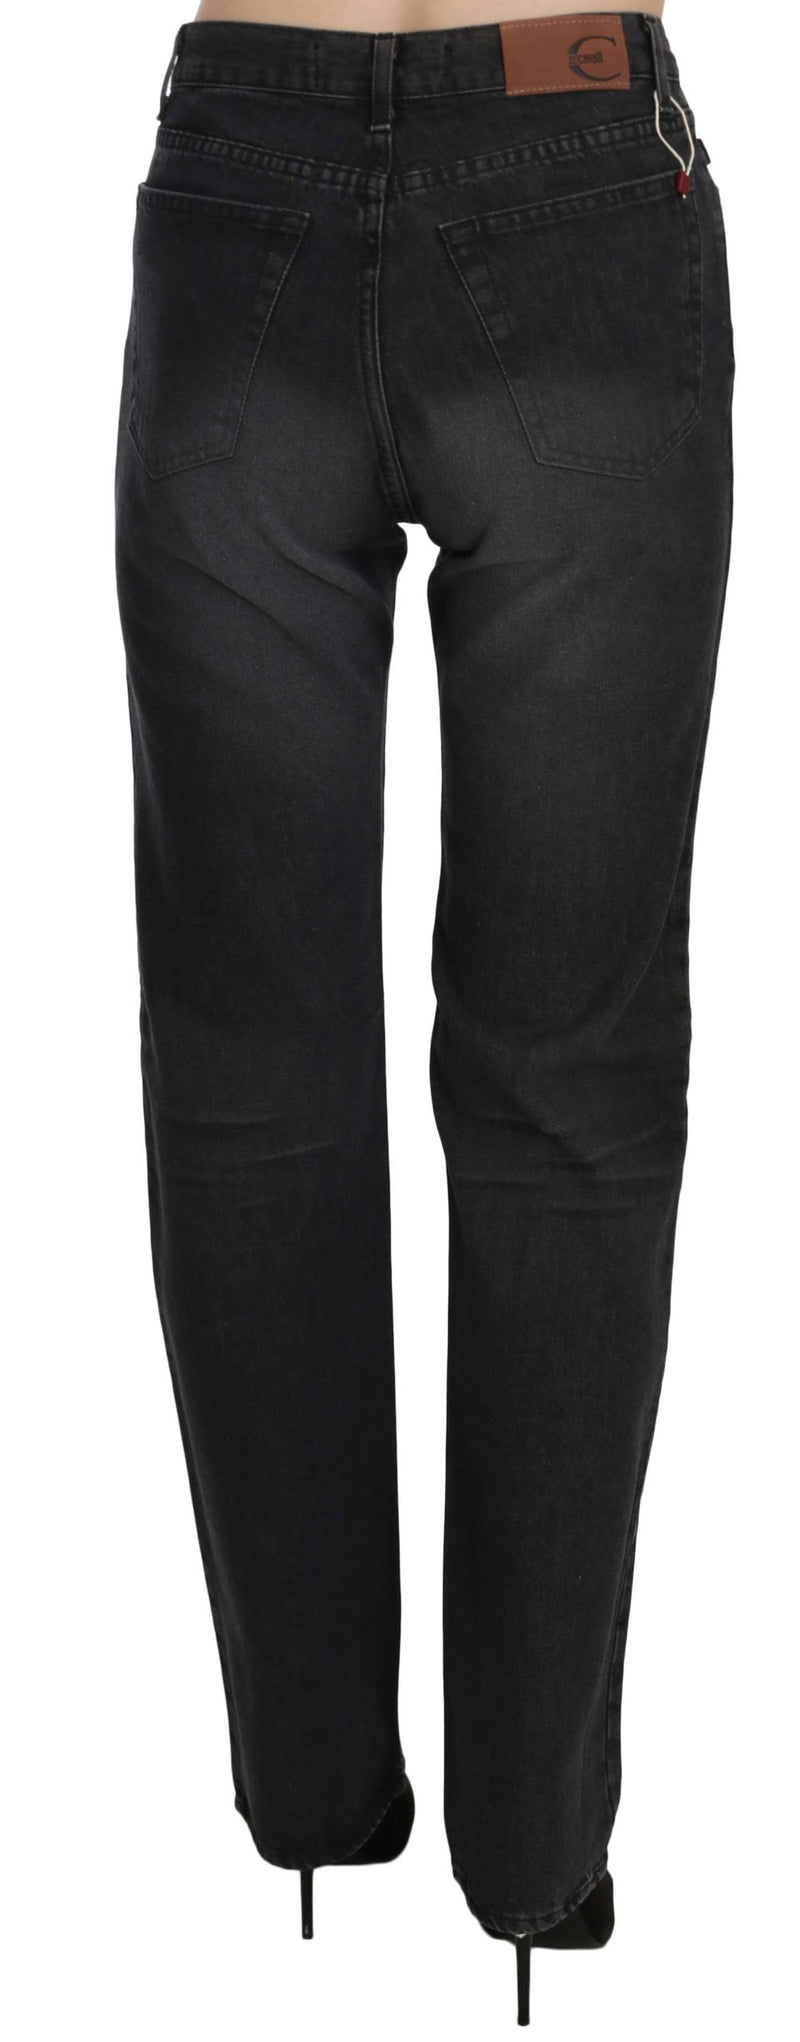 Black Washed High Waist Straight Denim Pants Jeans